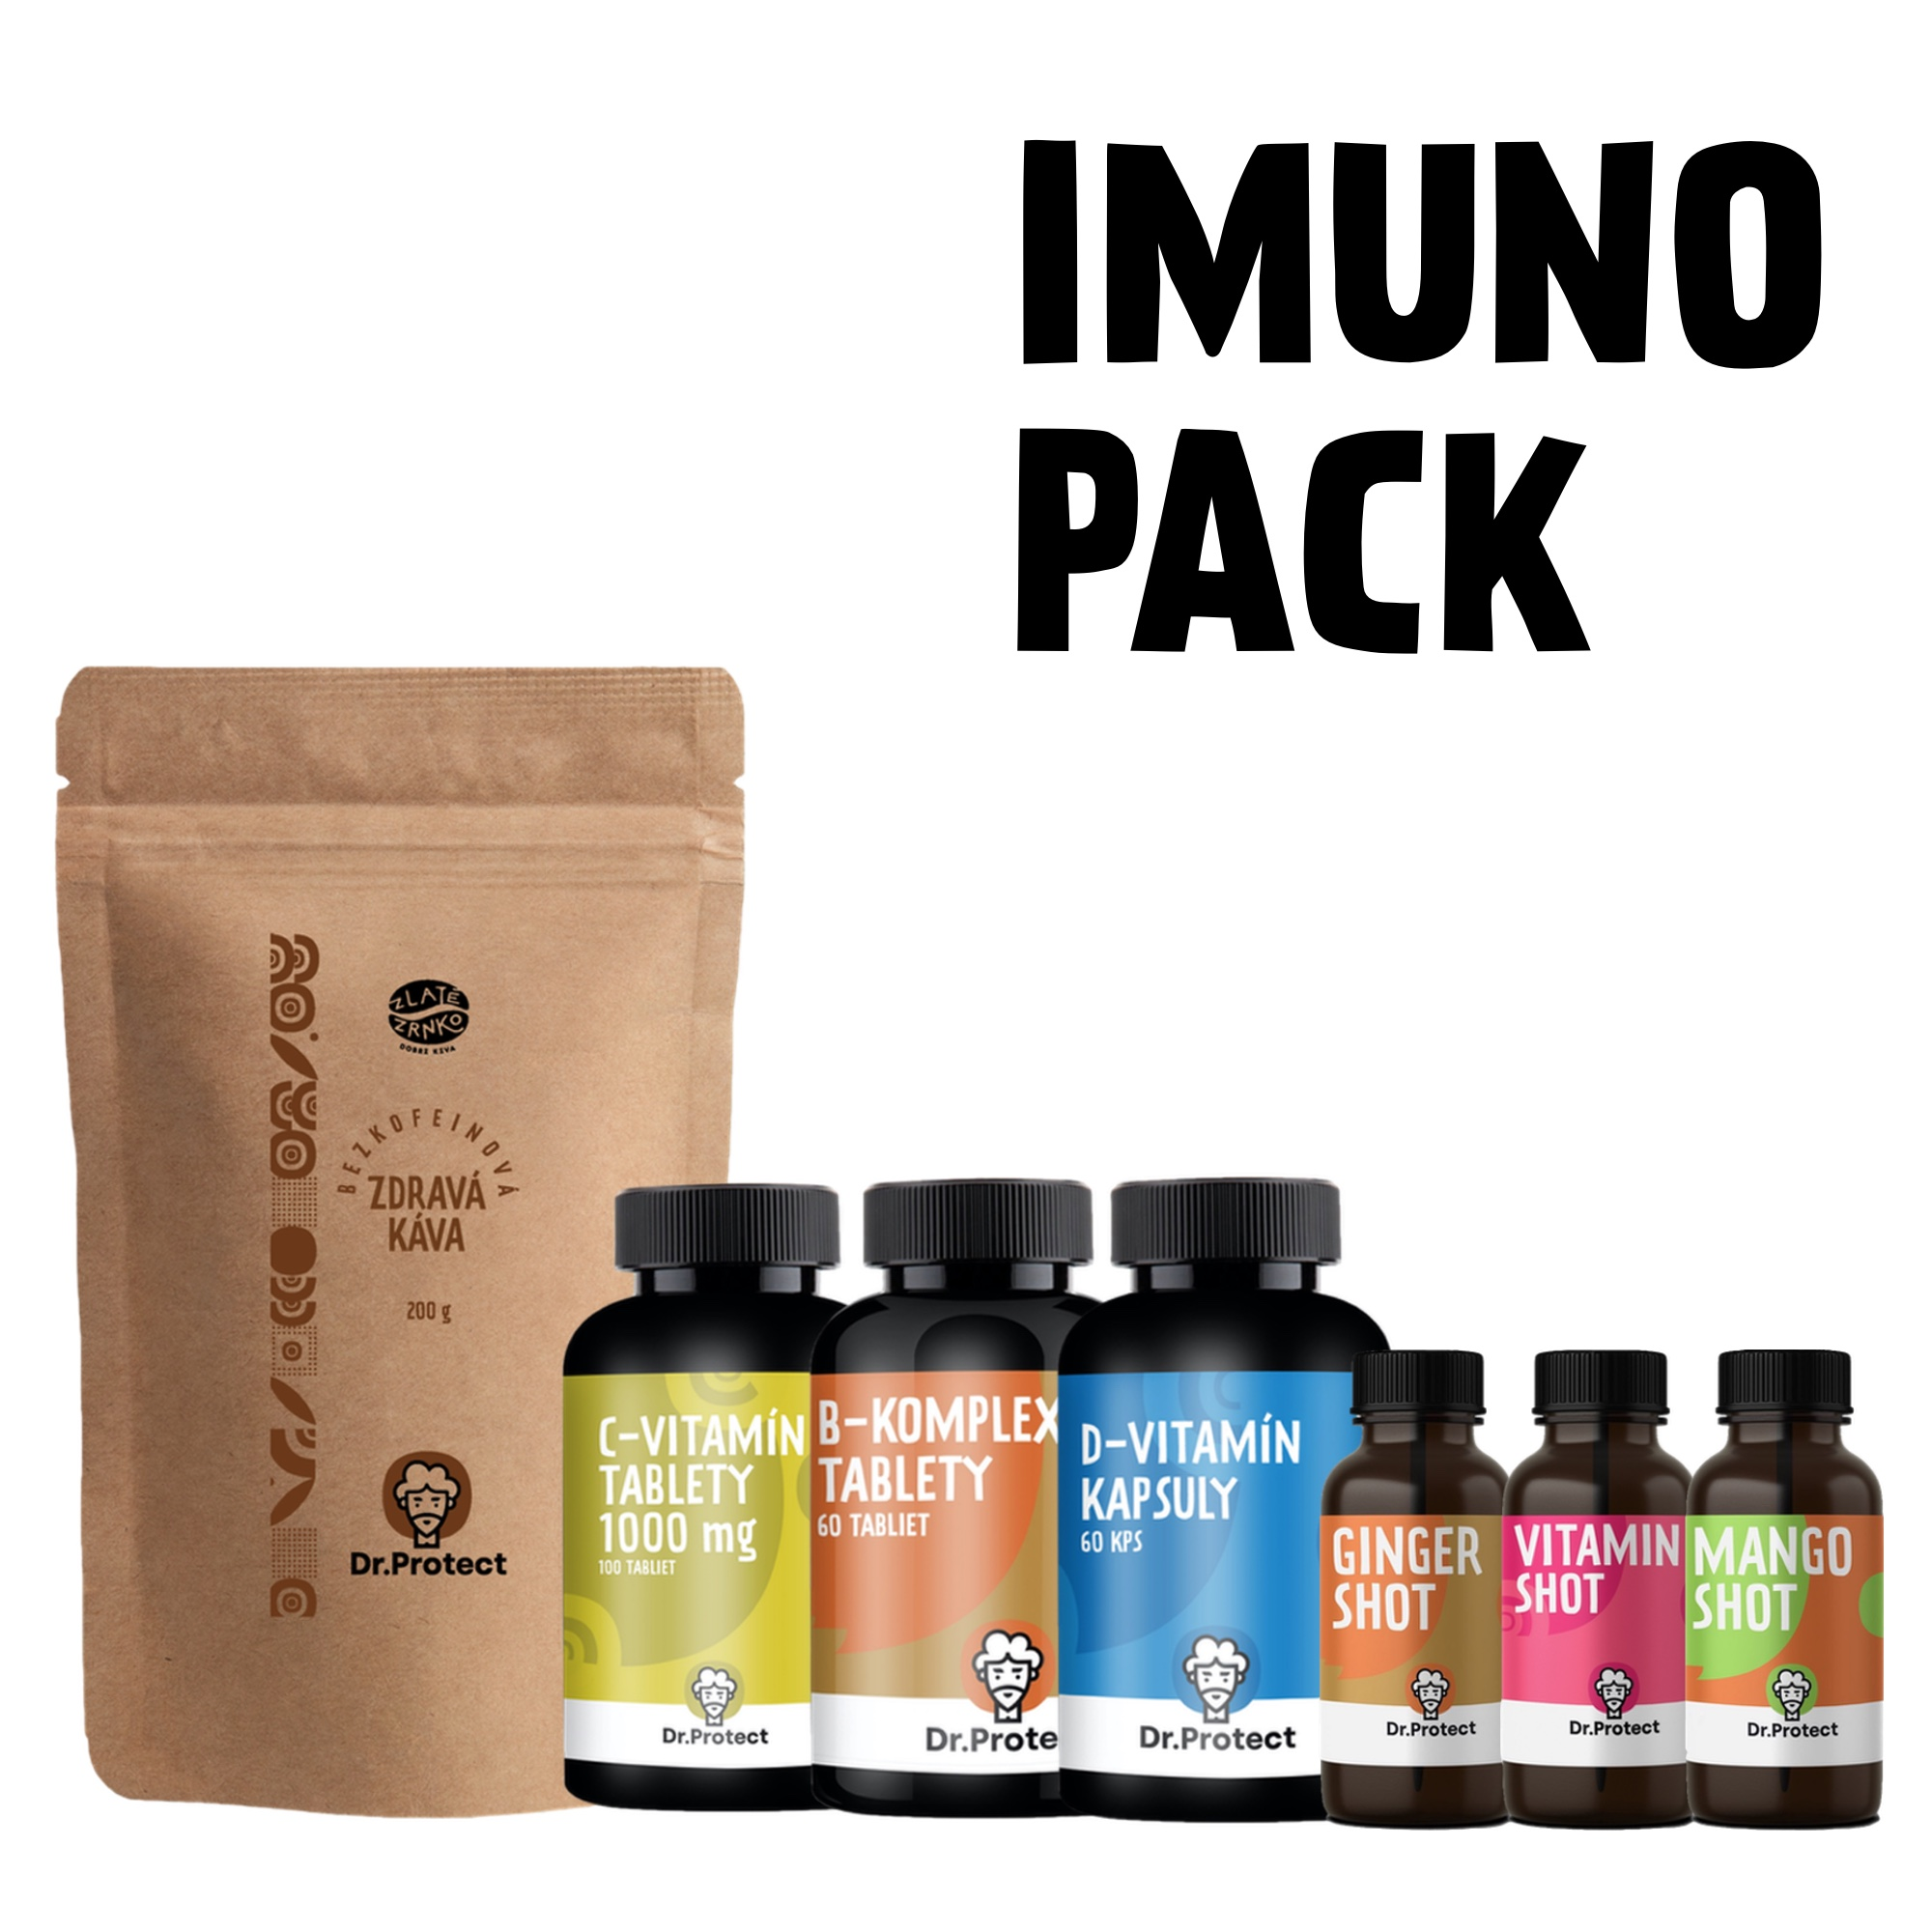 Dr.Protect Imuno Pack